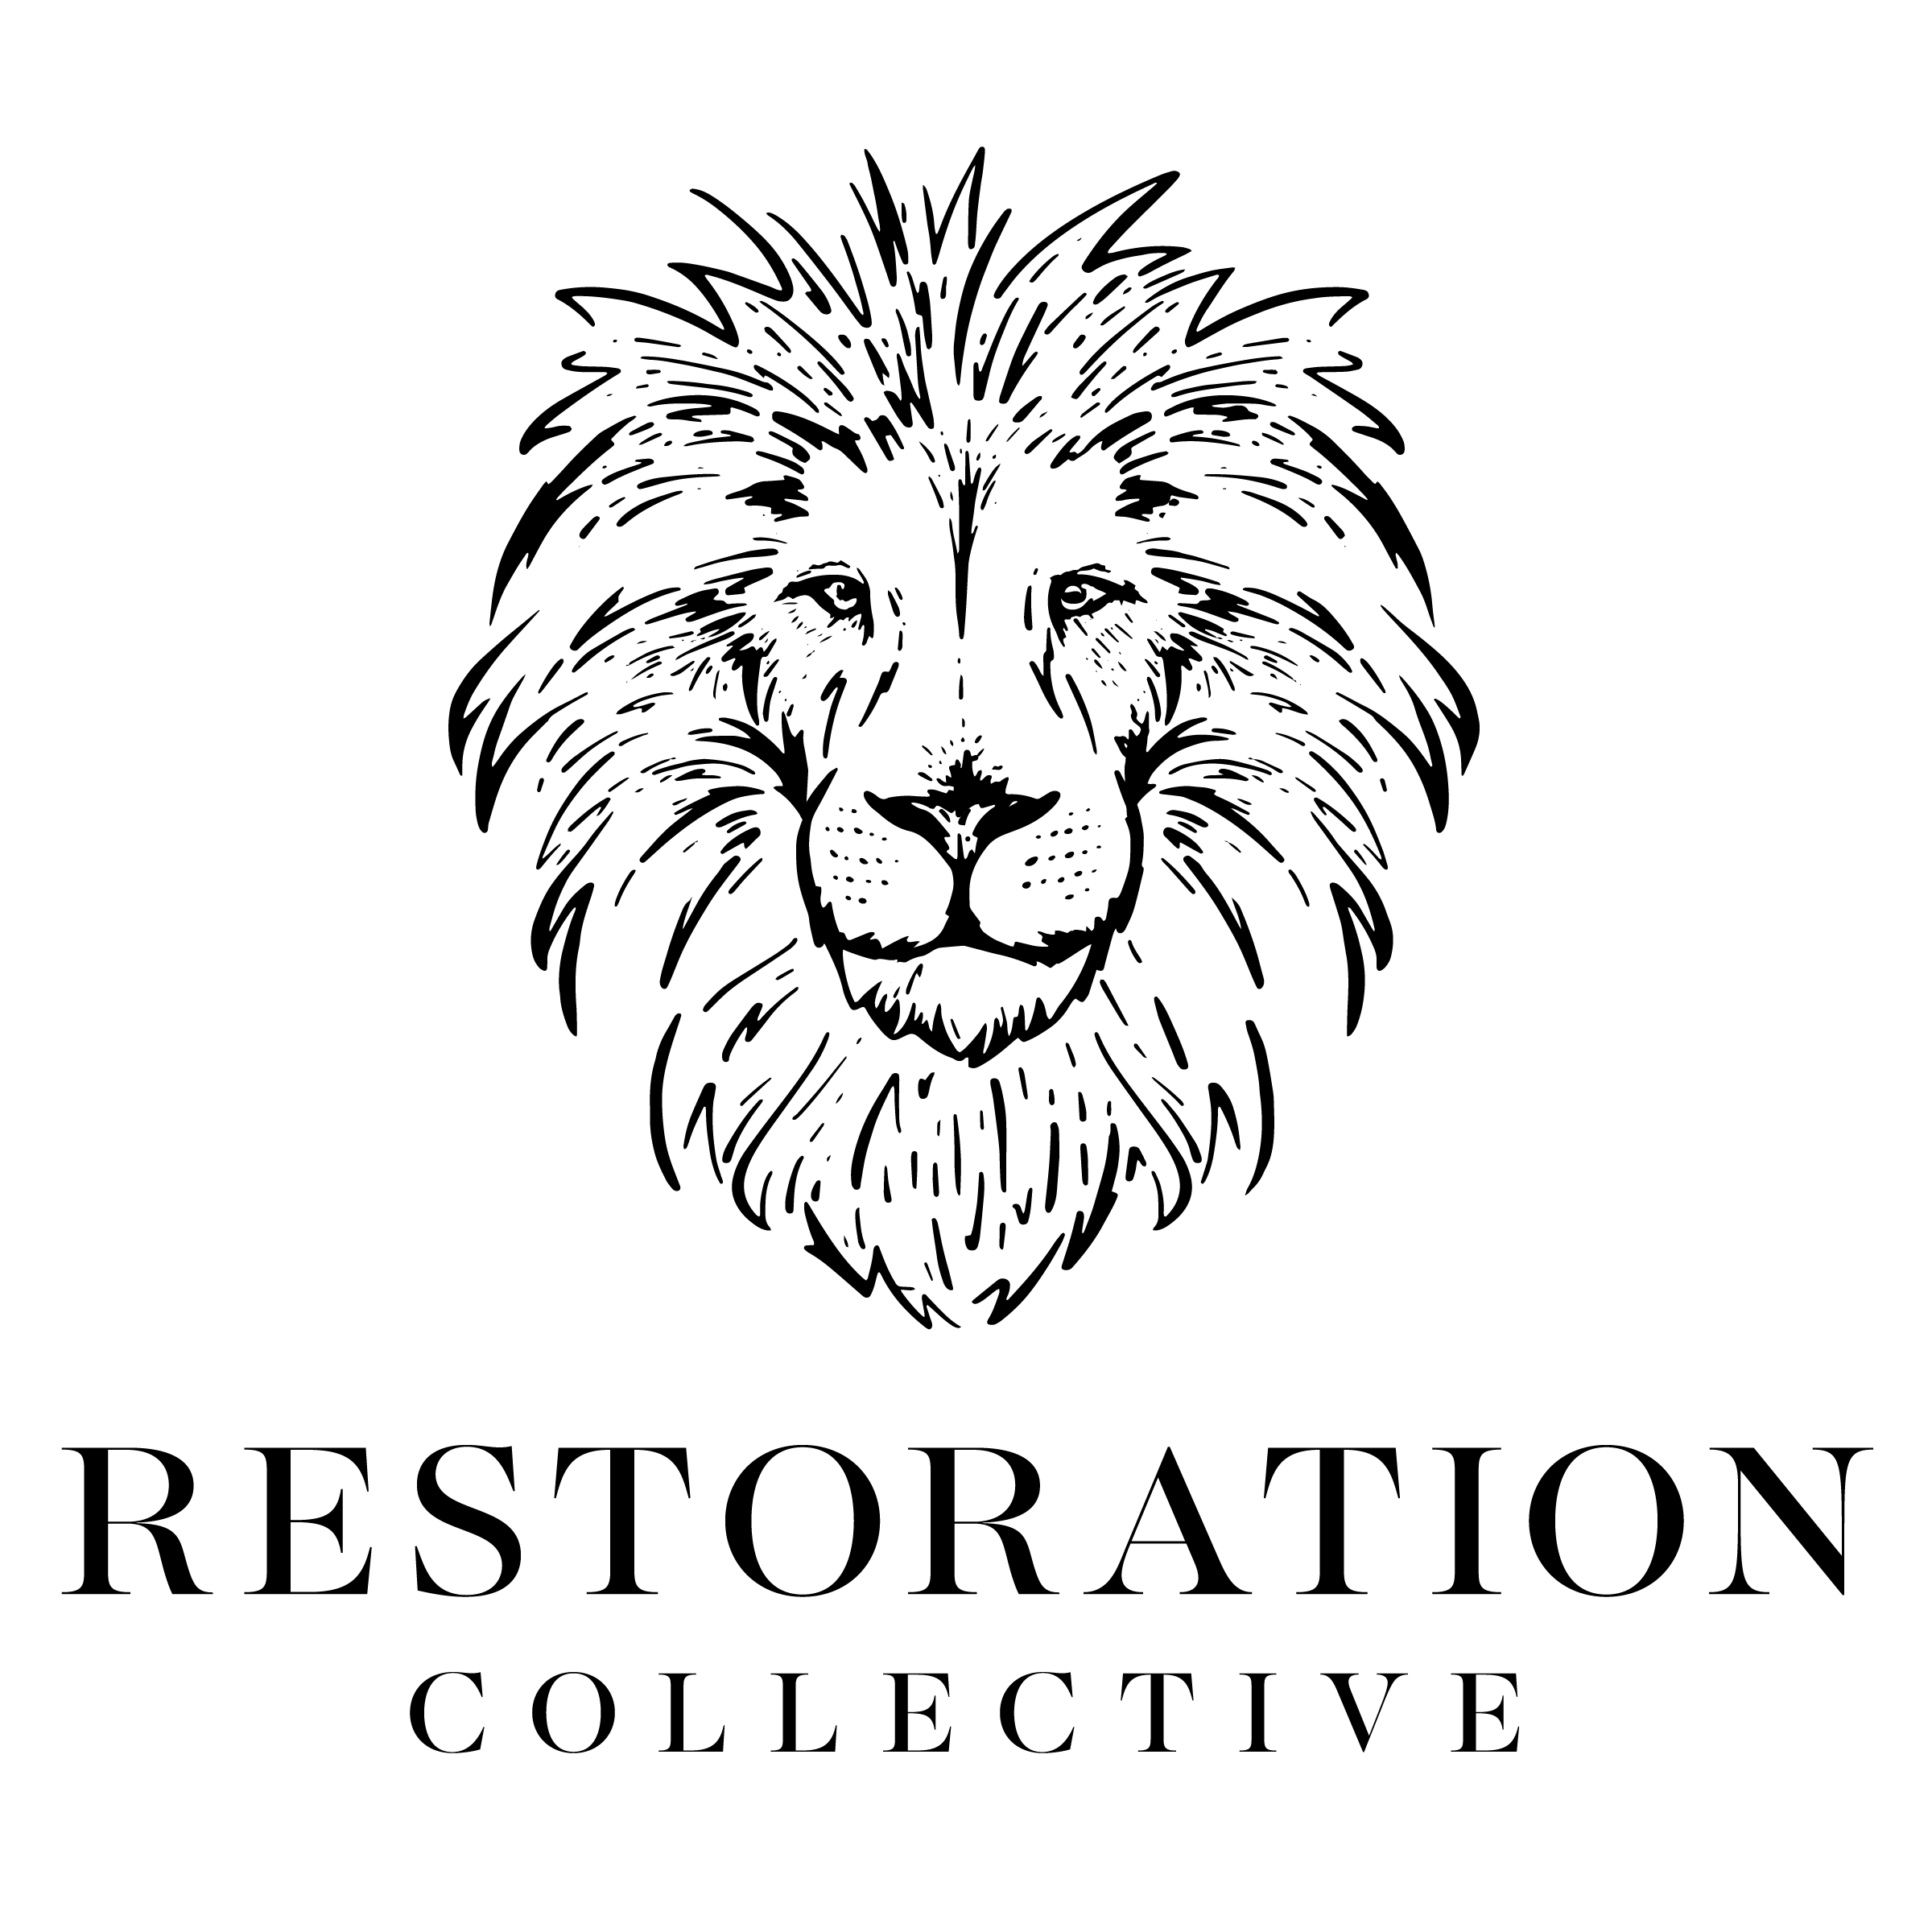 restoration_collective_logo-01